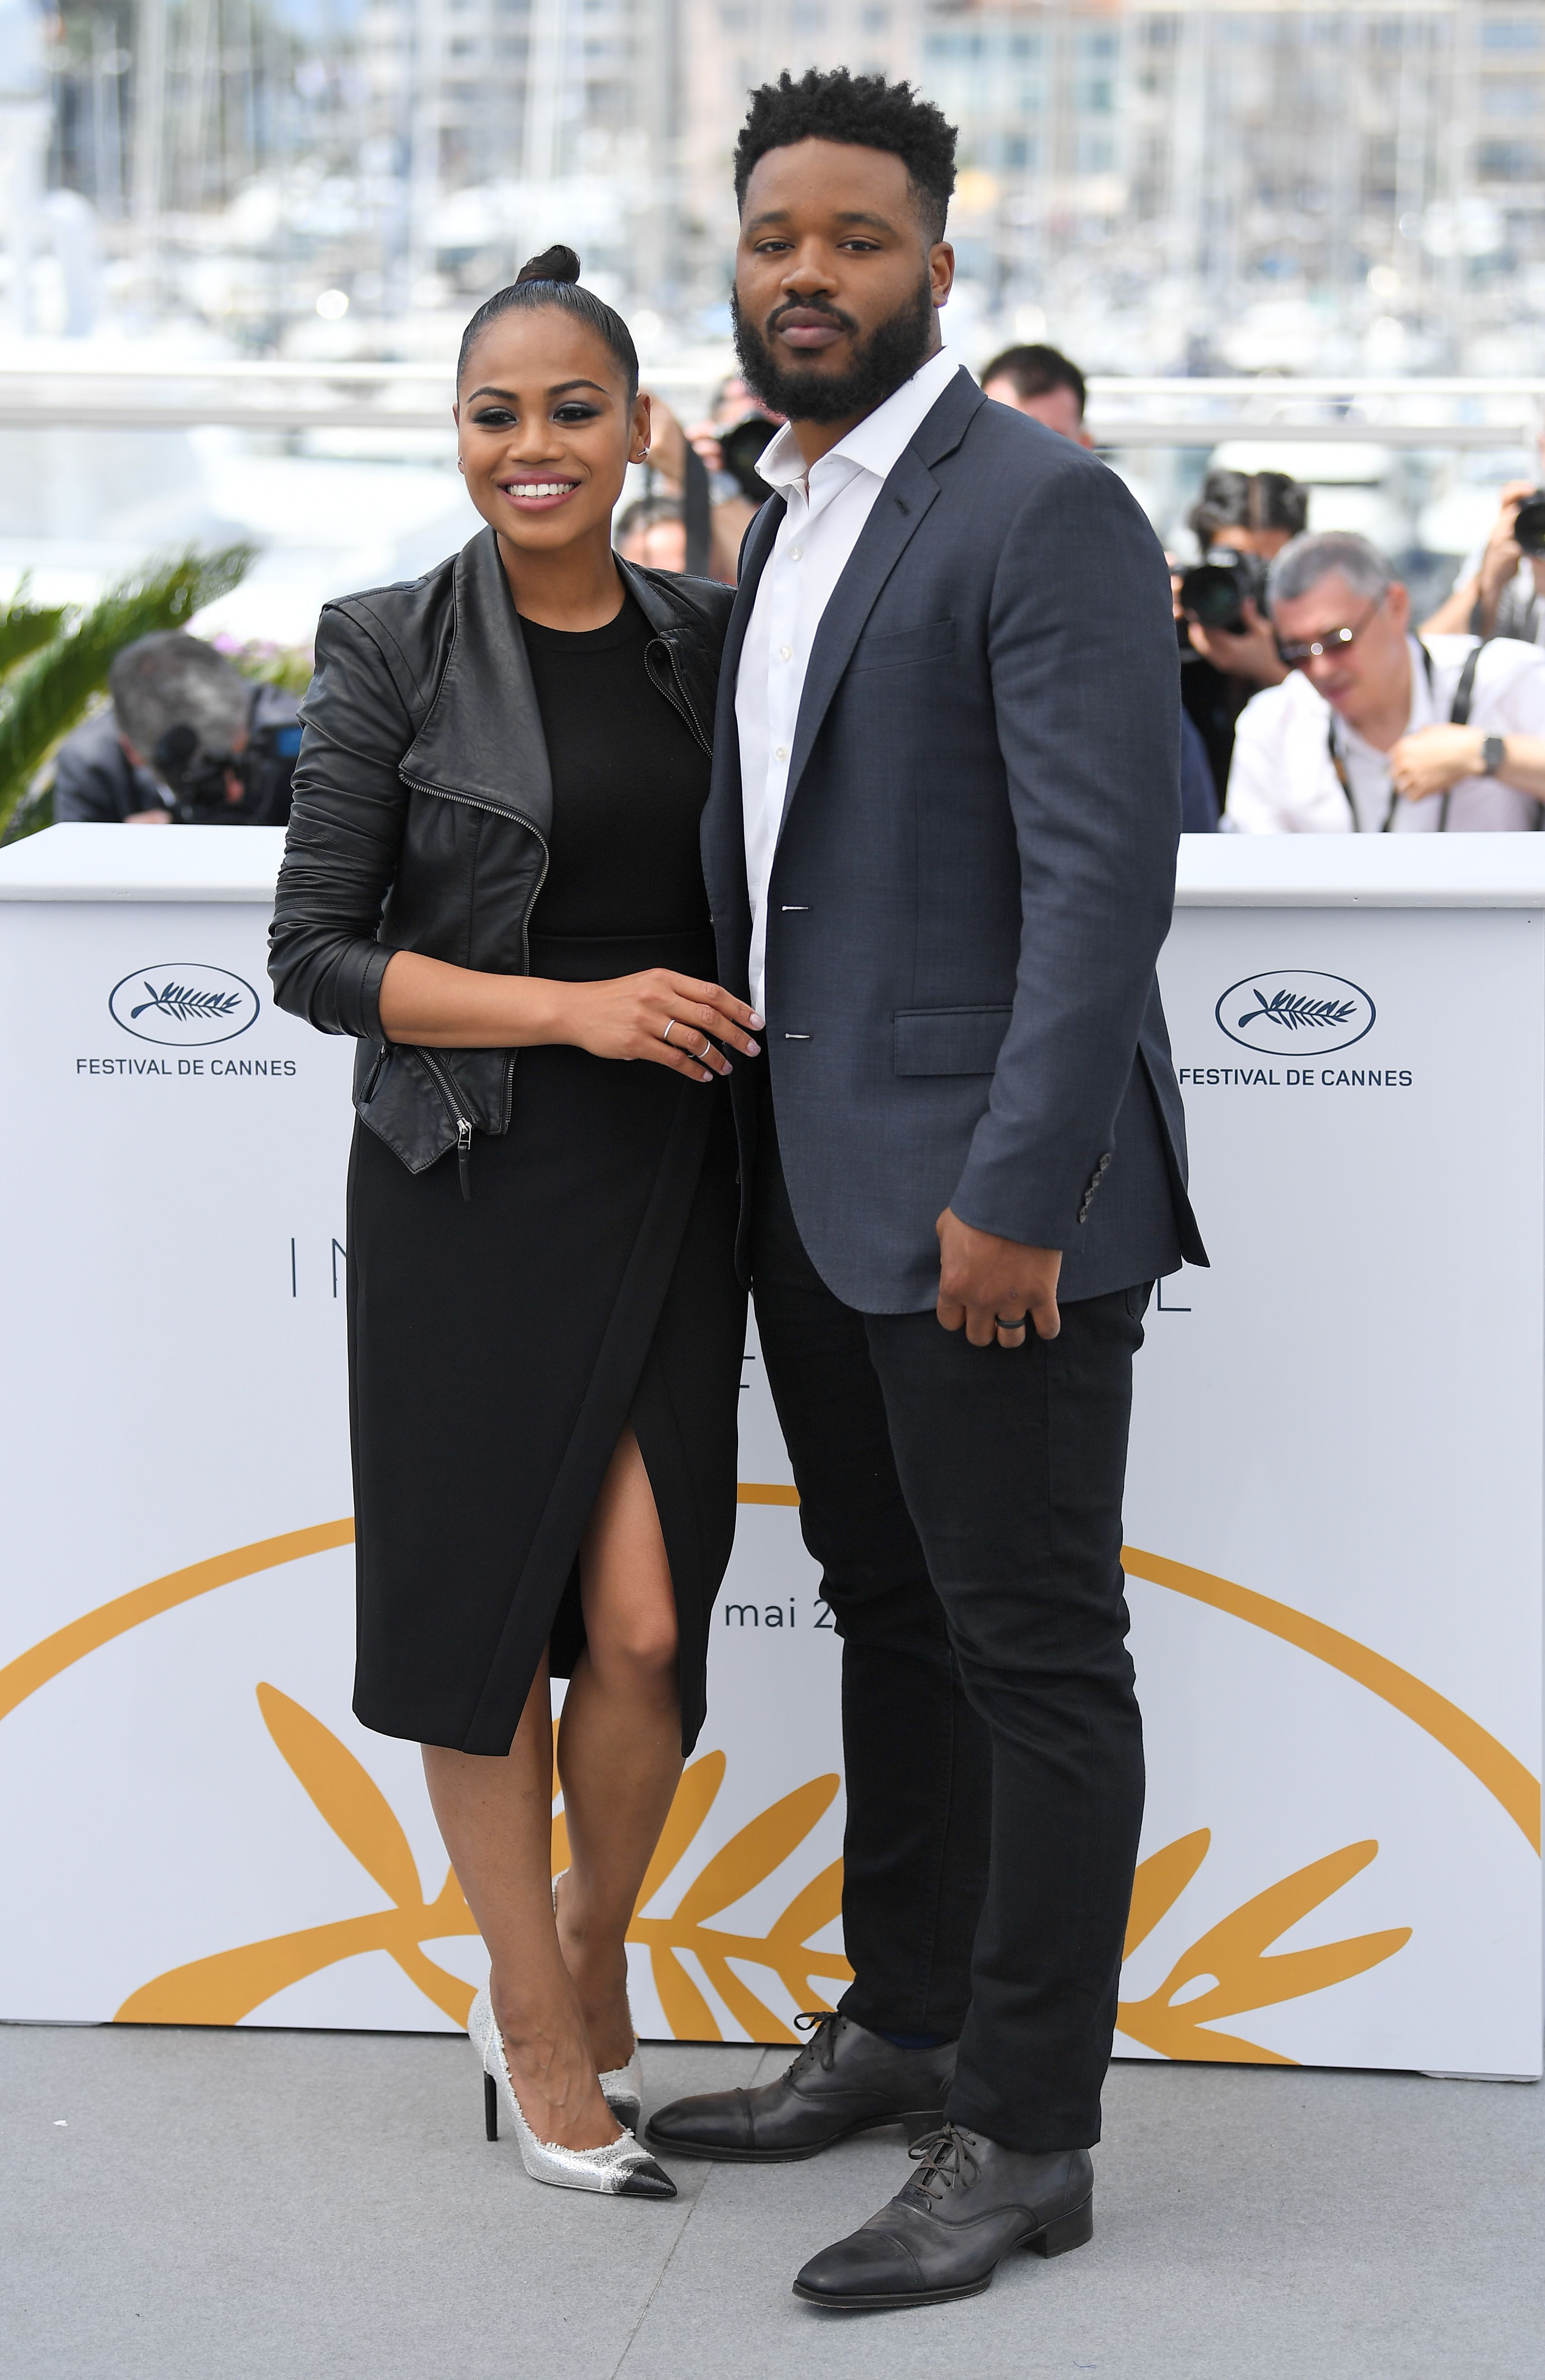 Zinzi Evans and Ryan CooglerRyan Coogler photocall, 71st Cannes Film Festival, France - 10 May 2018